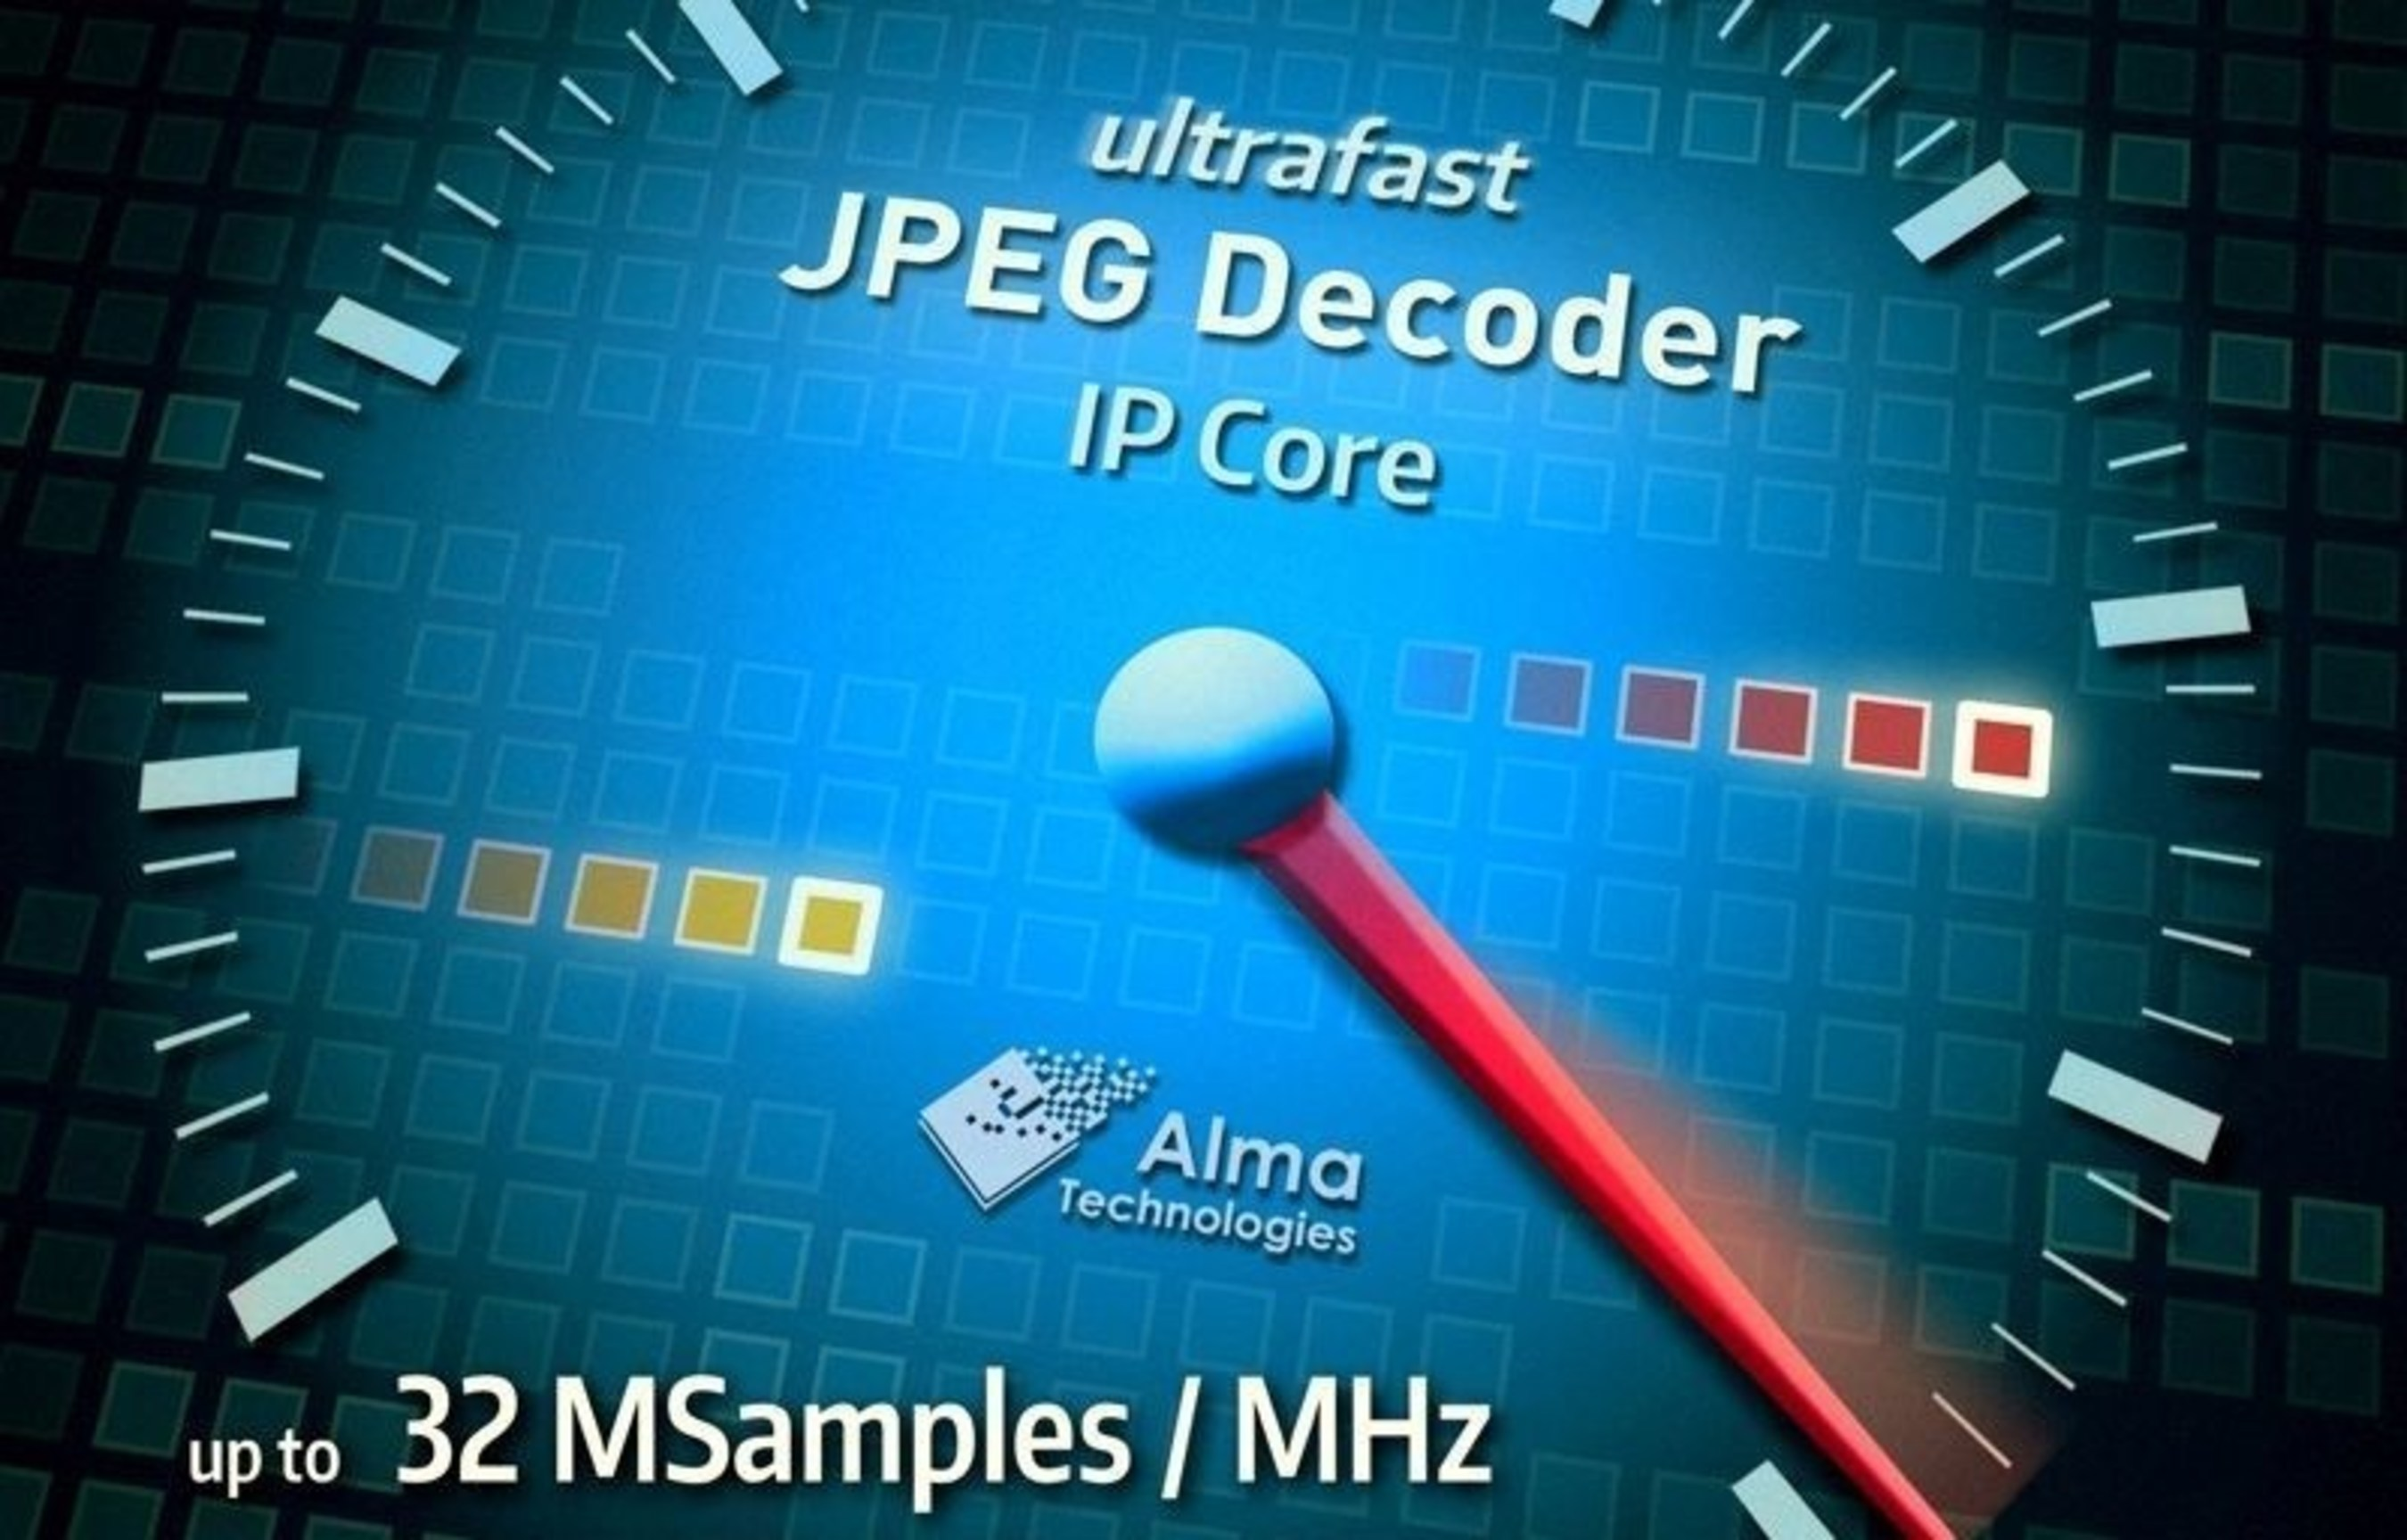 Alma Technologies Announces Availability of a New Ultra High Throughput JPEG Decoder IP Core